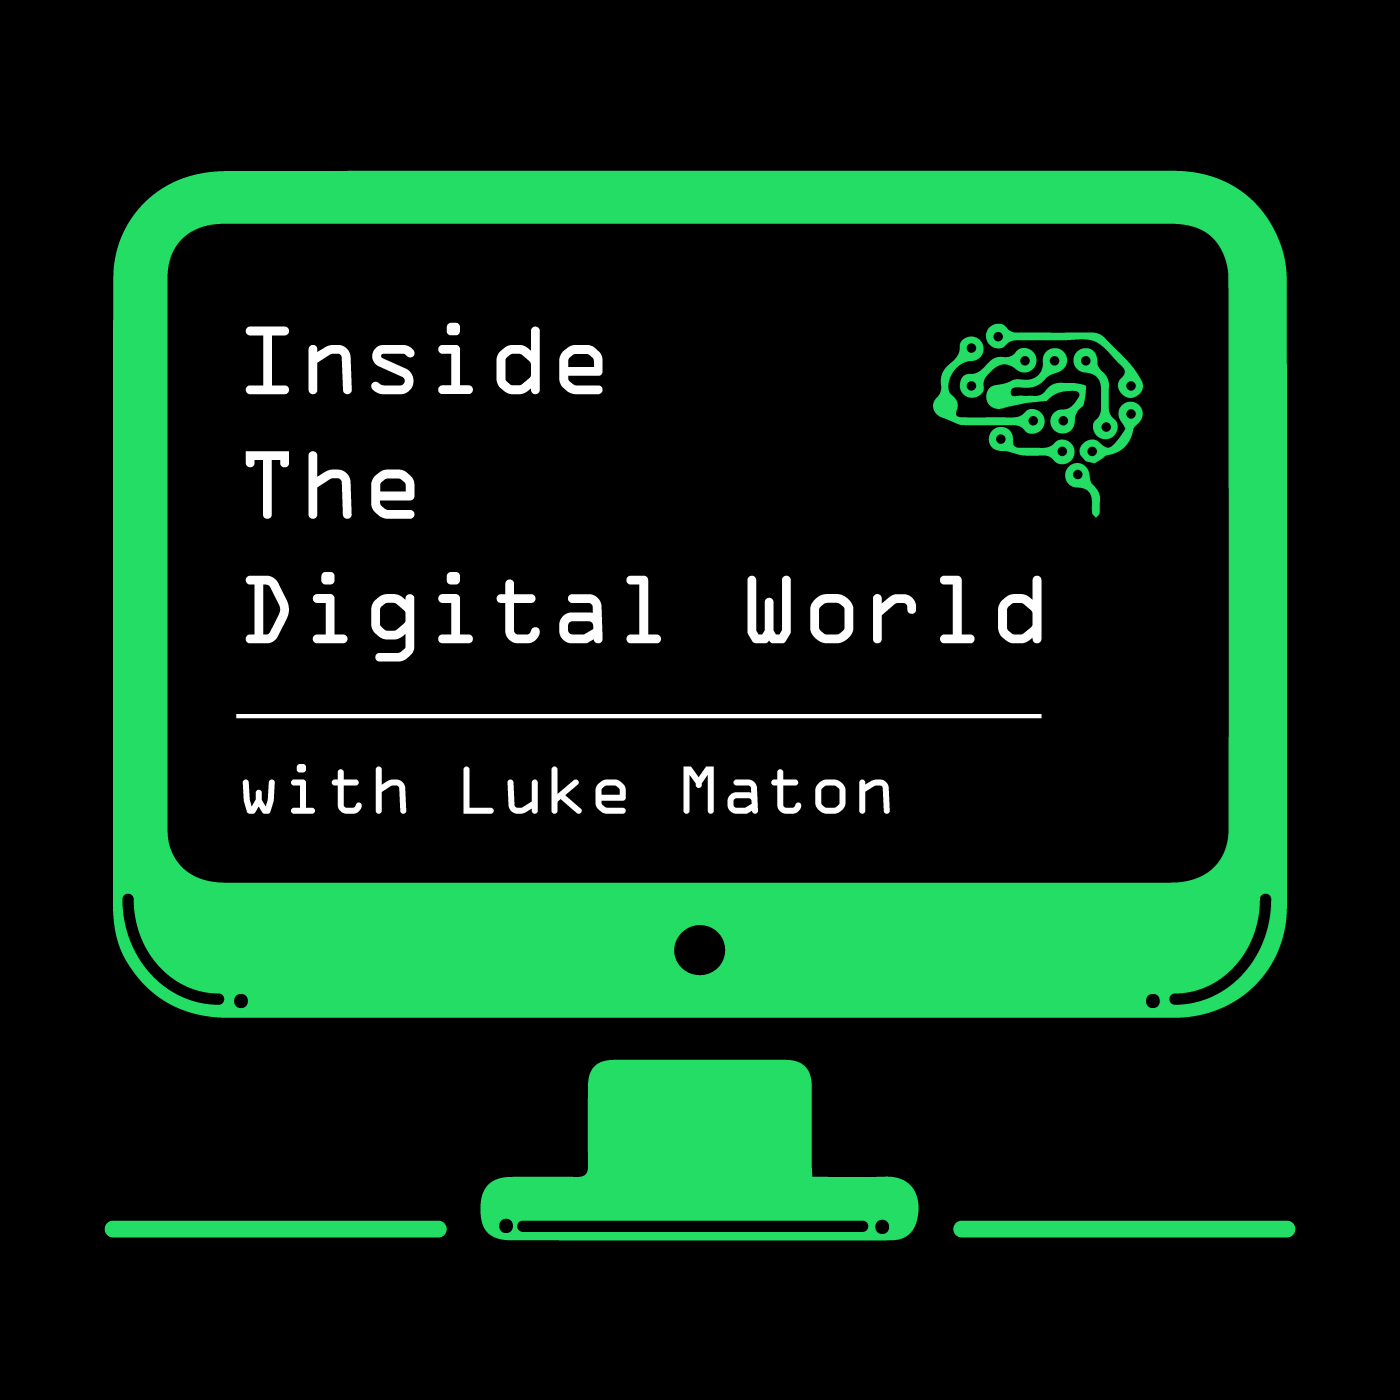 Inside The Digital World with Luke